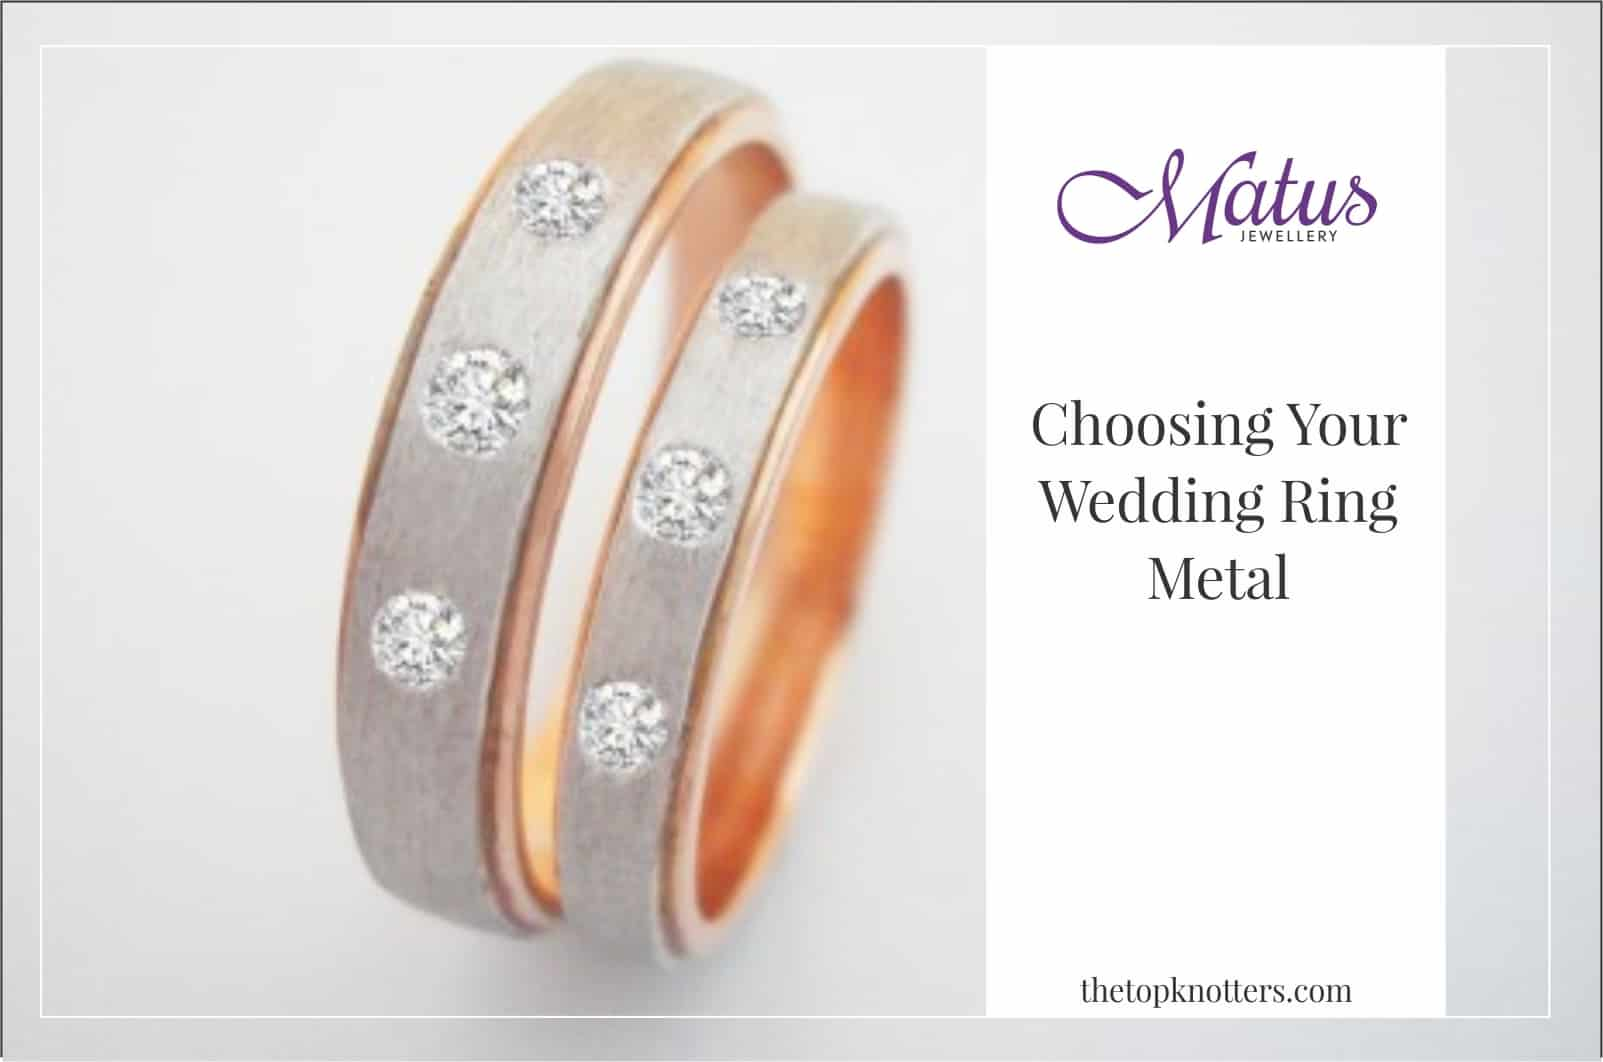 How To Choose Your Wedding Ring Metal | The Top Knotters